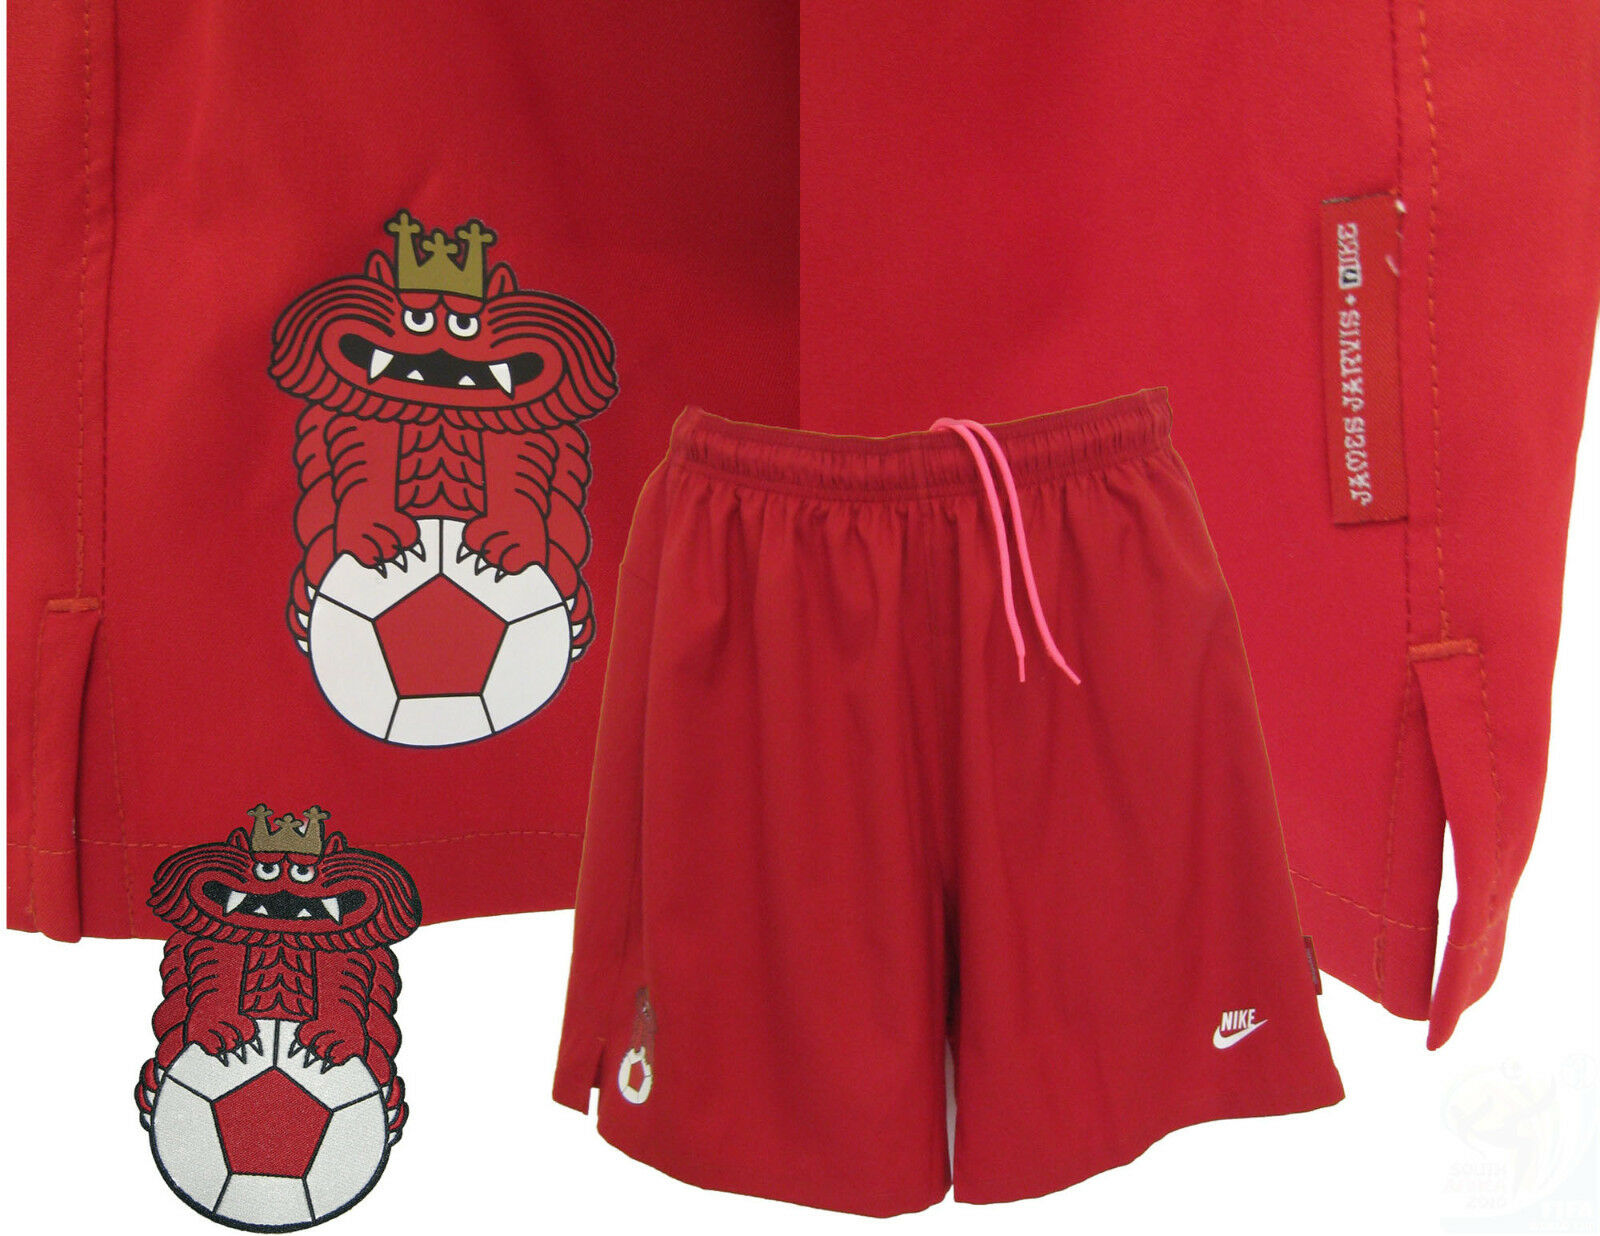 Rare New NIKE ENGLAND Football Training Shorts Jarvis Colab Red M